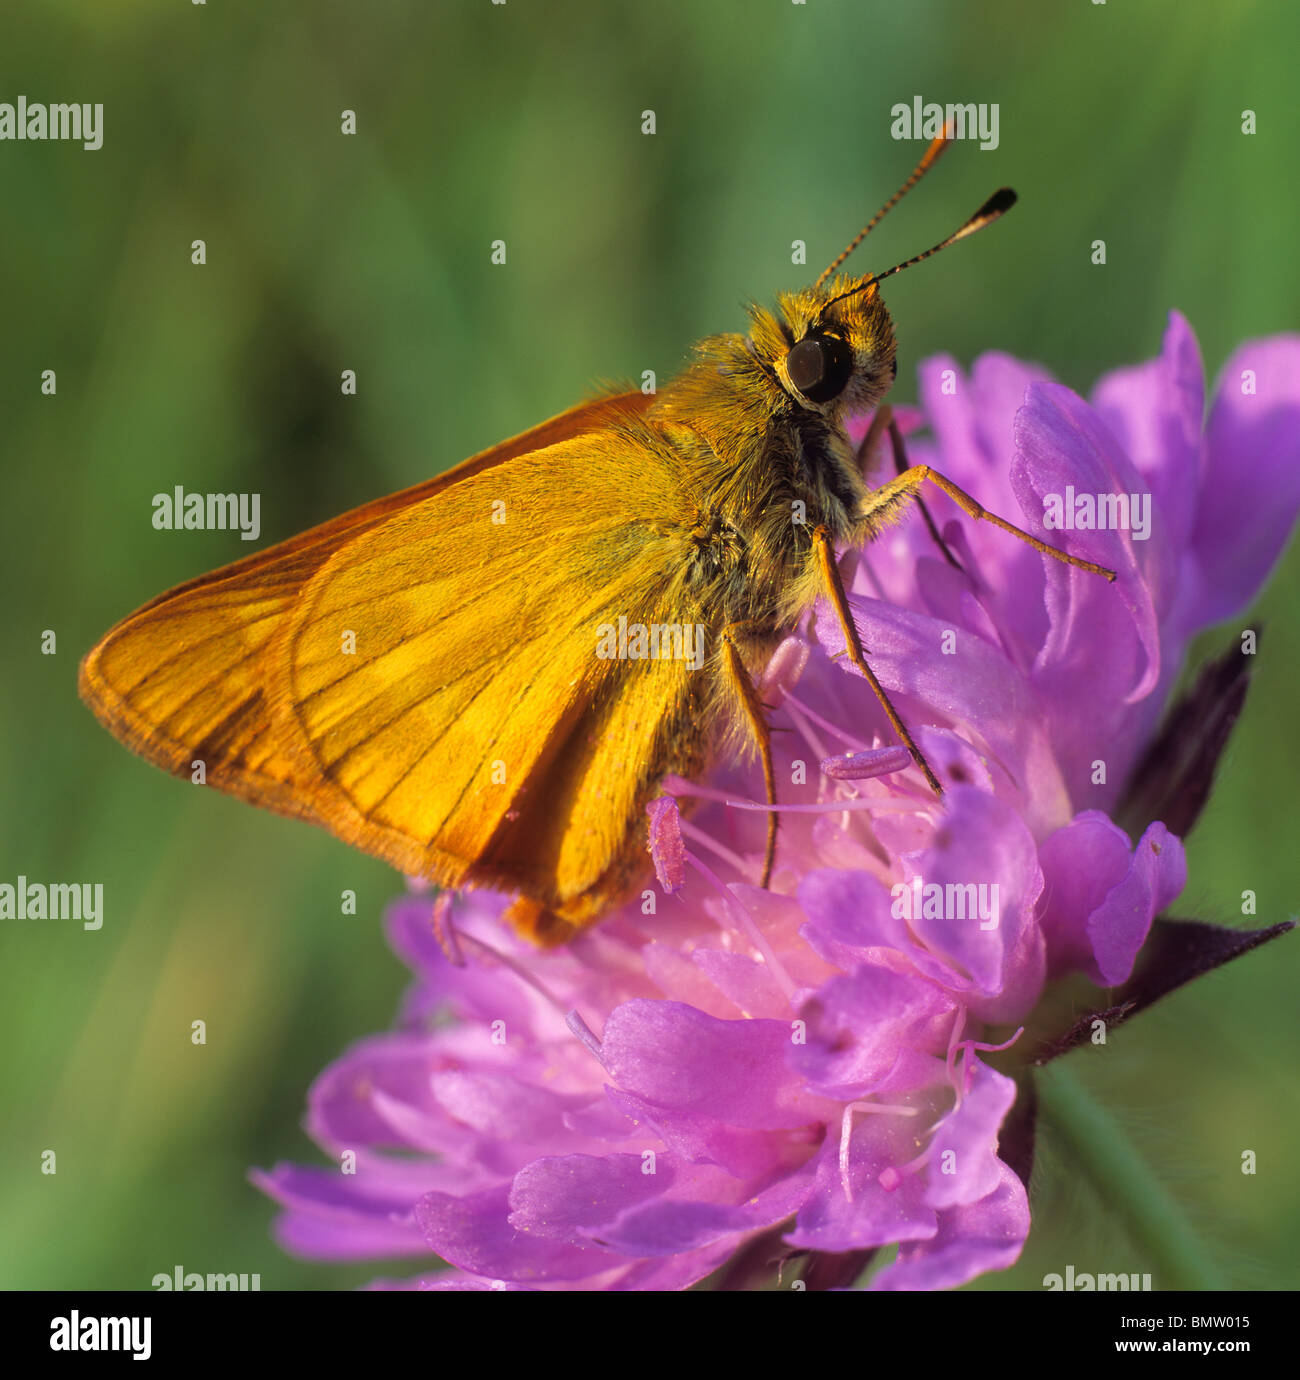 Small Skipper (Thymelicus sylvestris, Thymelicus flavus), butterfly on a flower. - Stock Image